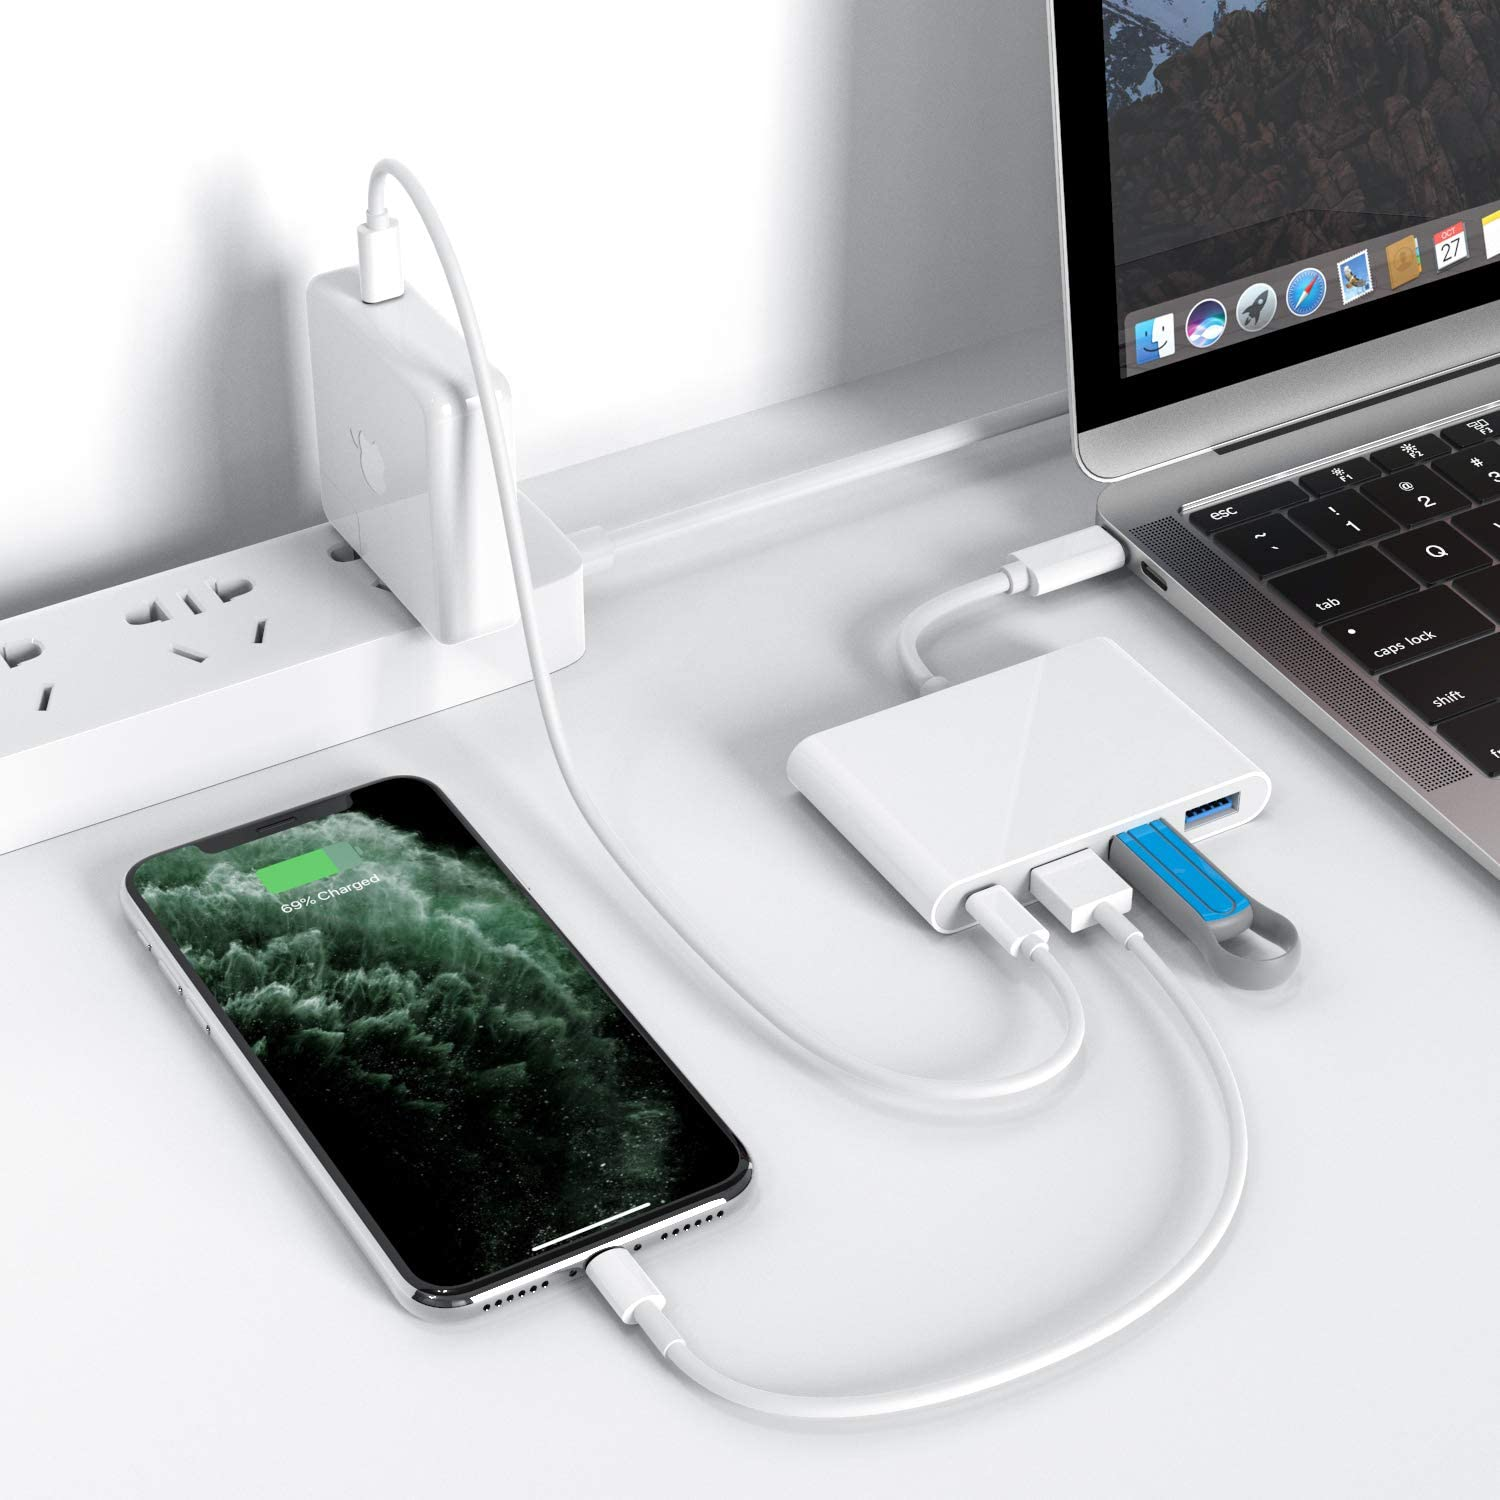 Nonda 4-in-1 USB C Hub